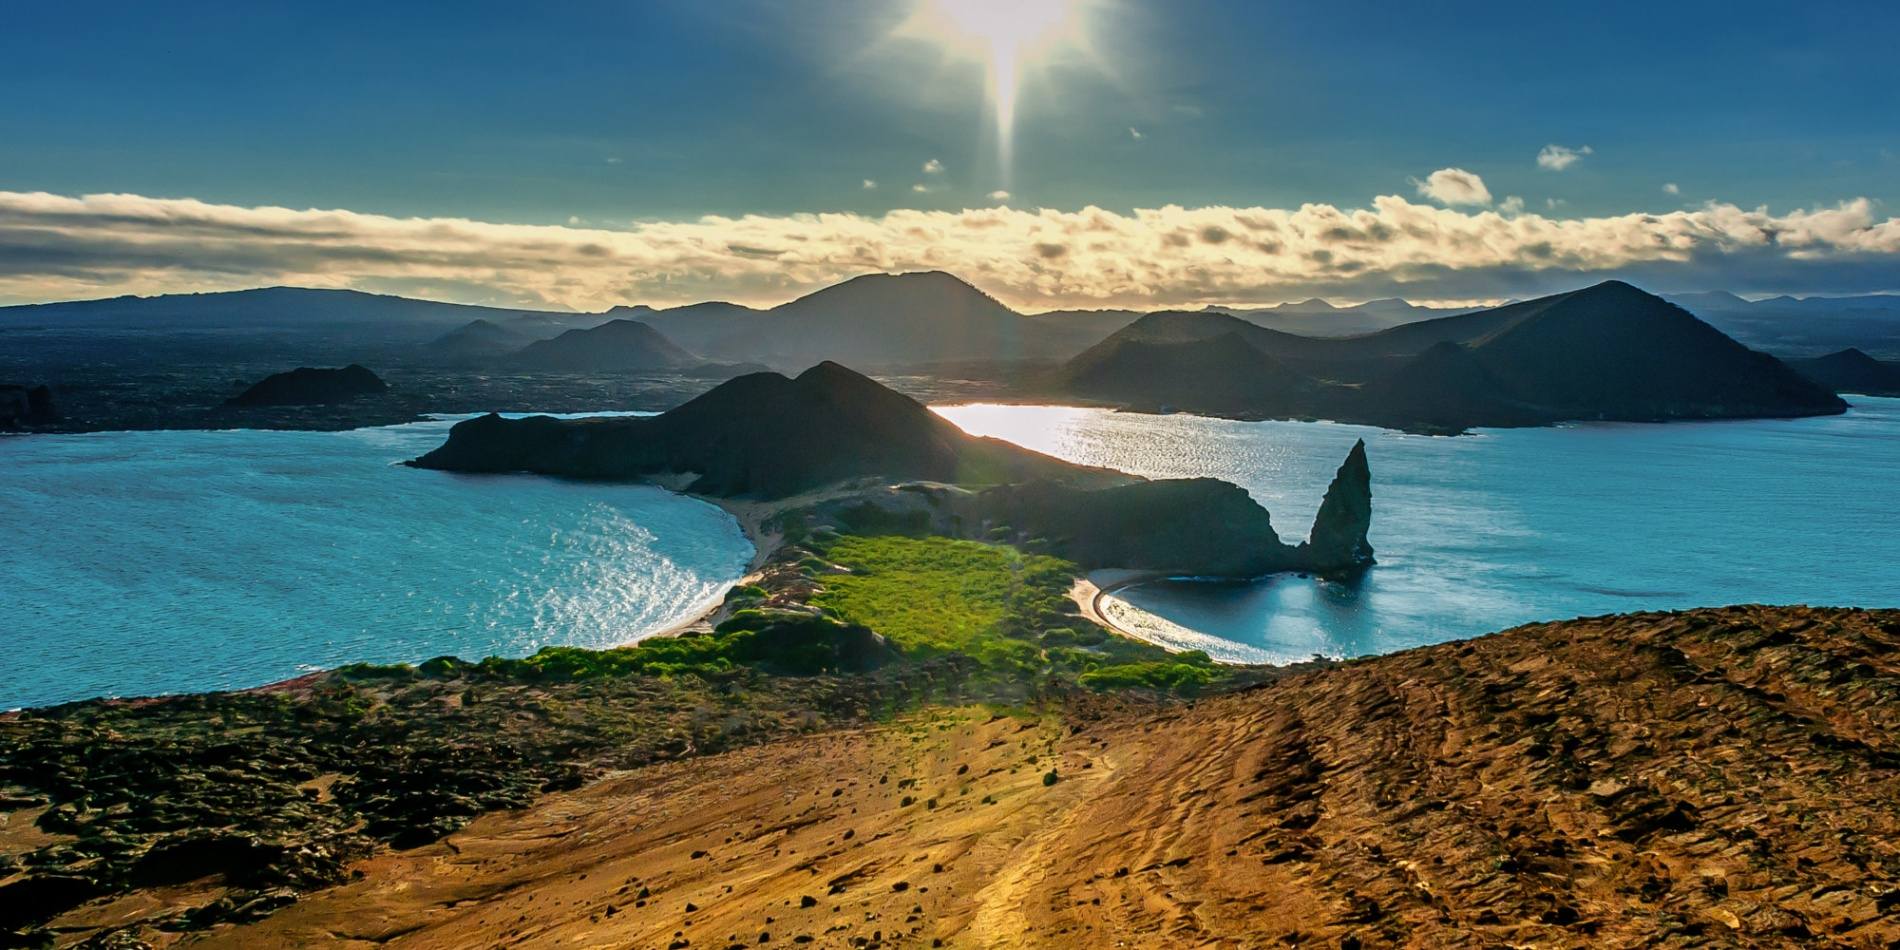 galapagos islands attractive places for tourism gets ready